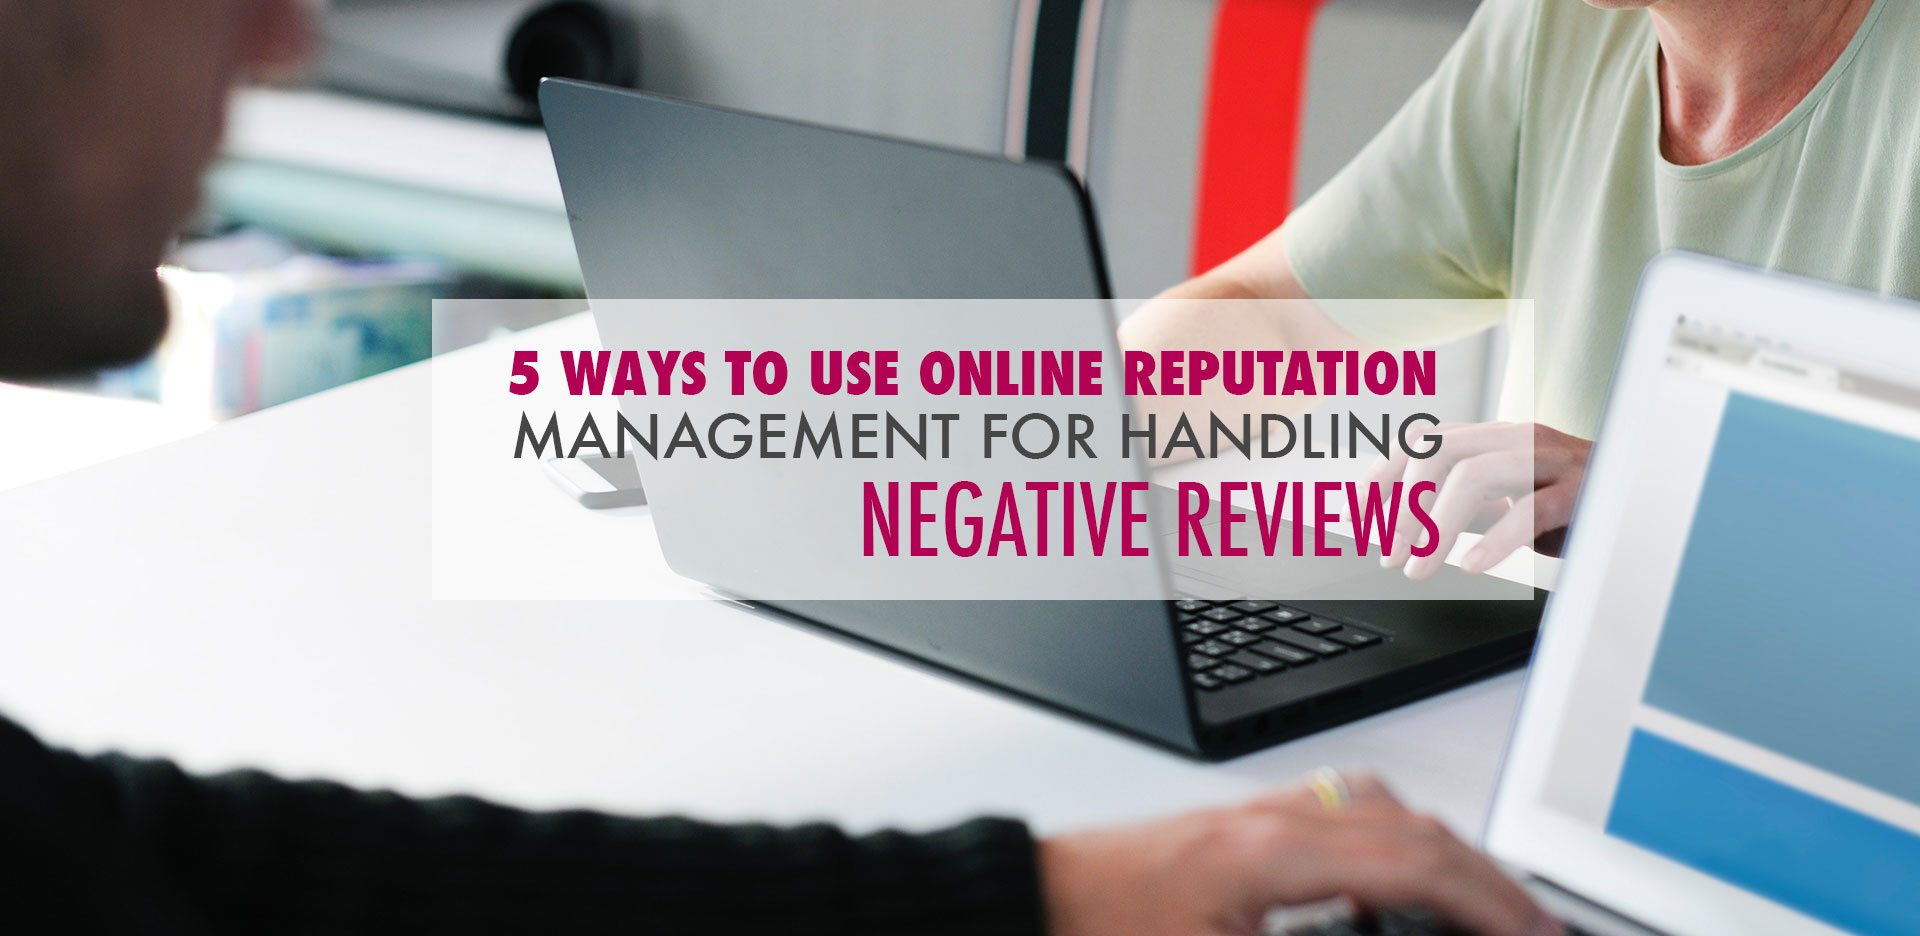 5-Ways-To-Use-Online-Reputation-Management-For-Handling-Negative-Reviews